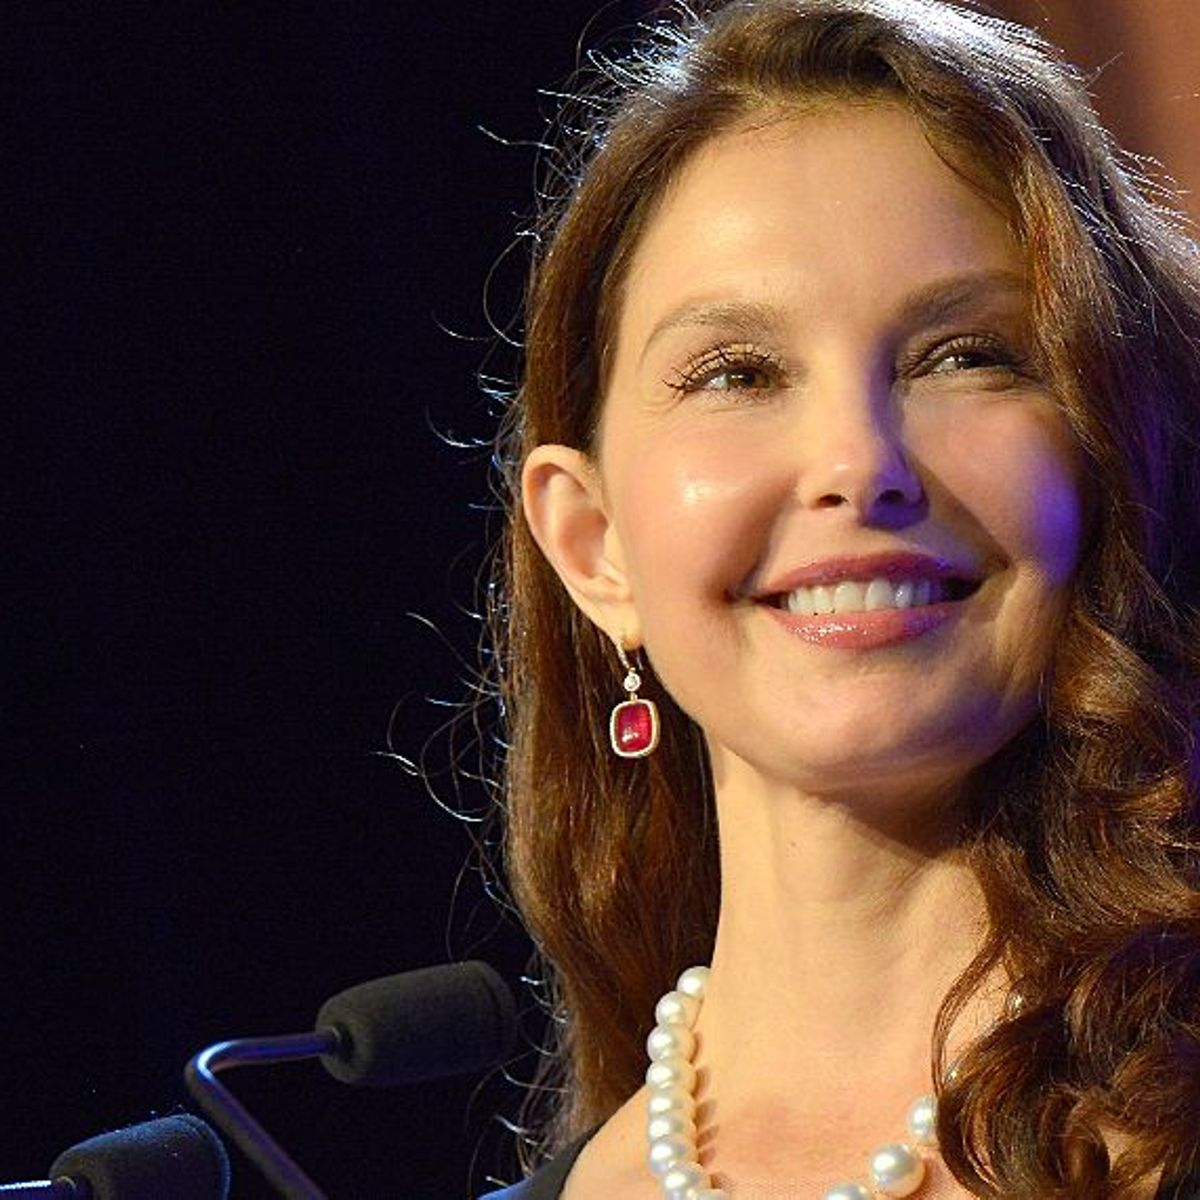 Ashley Judd is famous for her global humanitarian work and politics